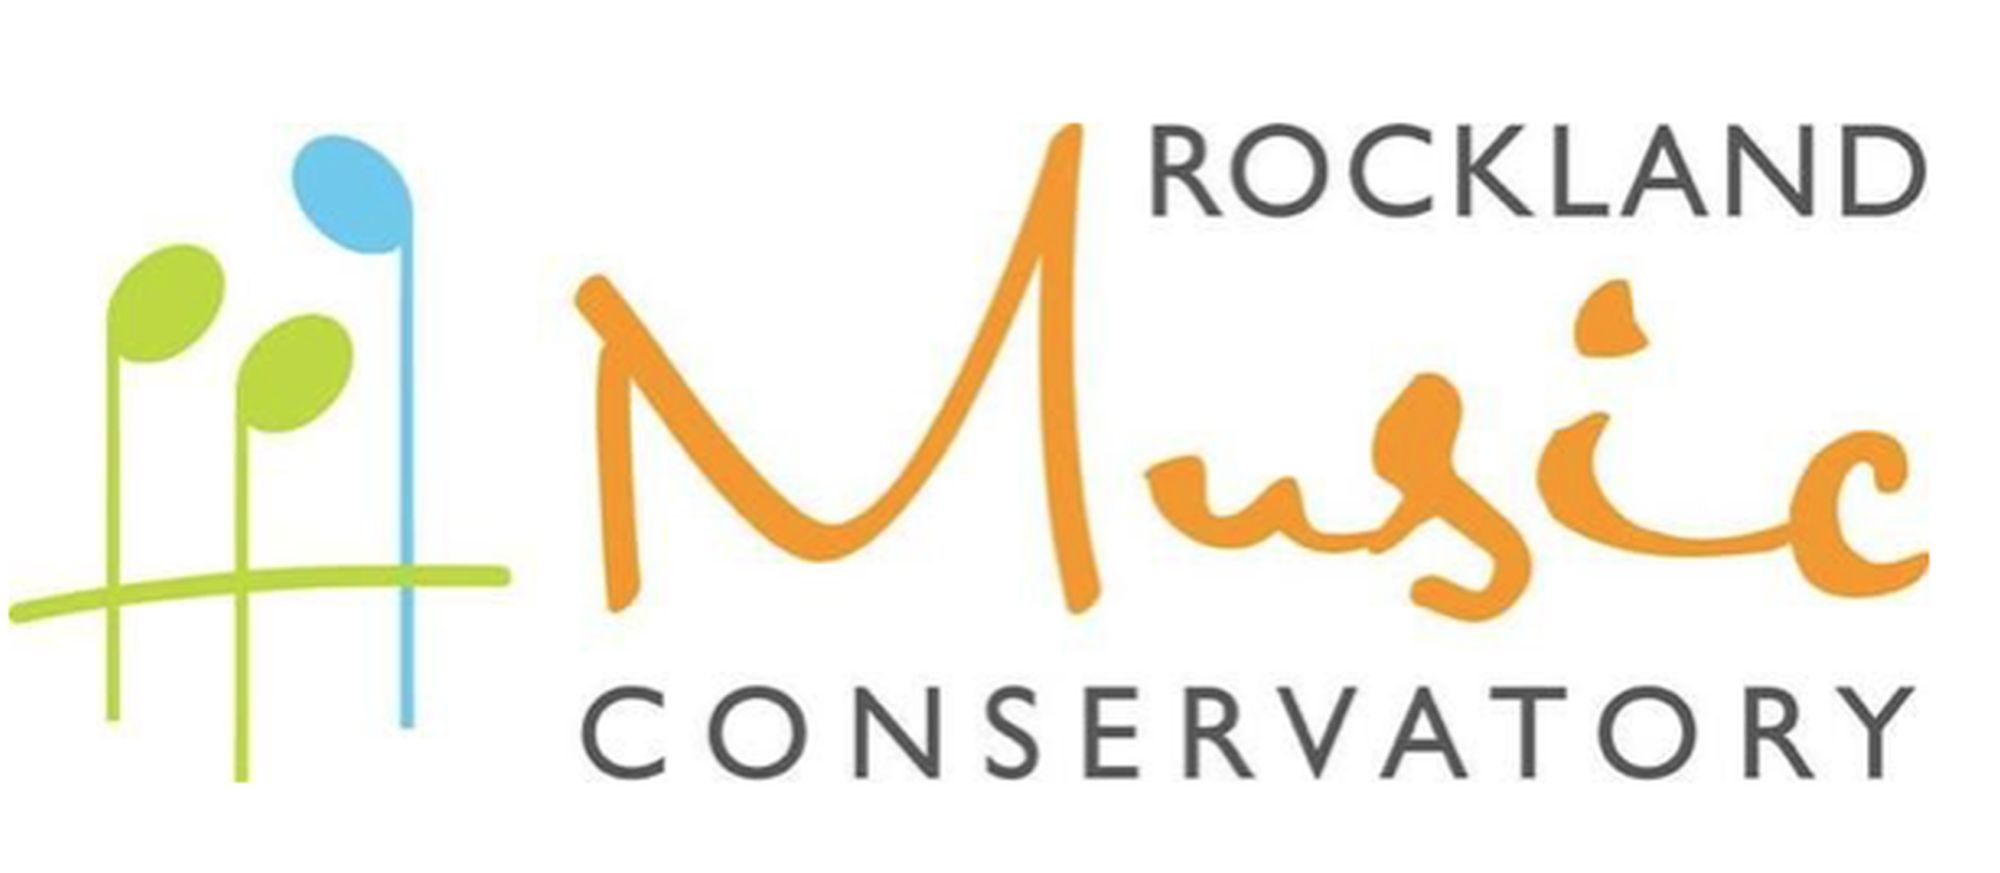 Rockland Conservatory of Music